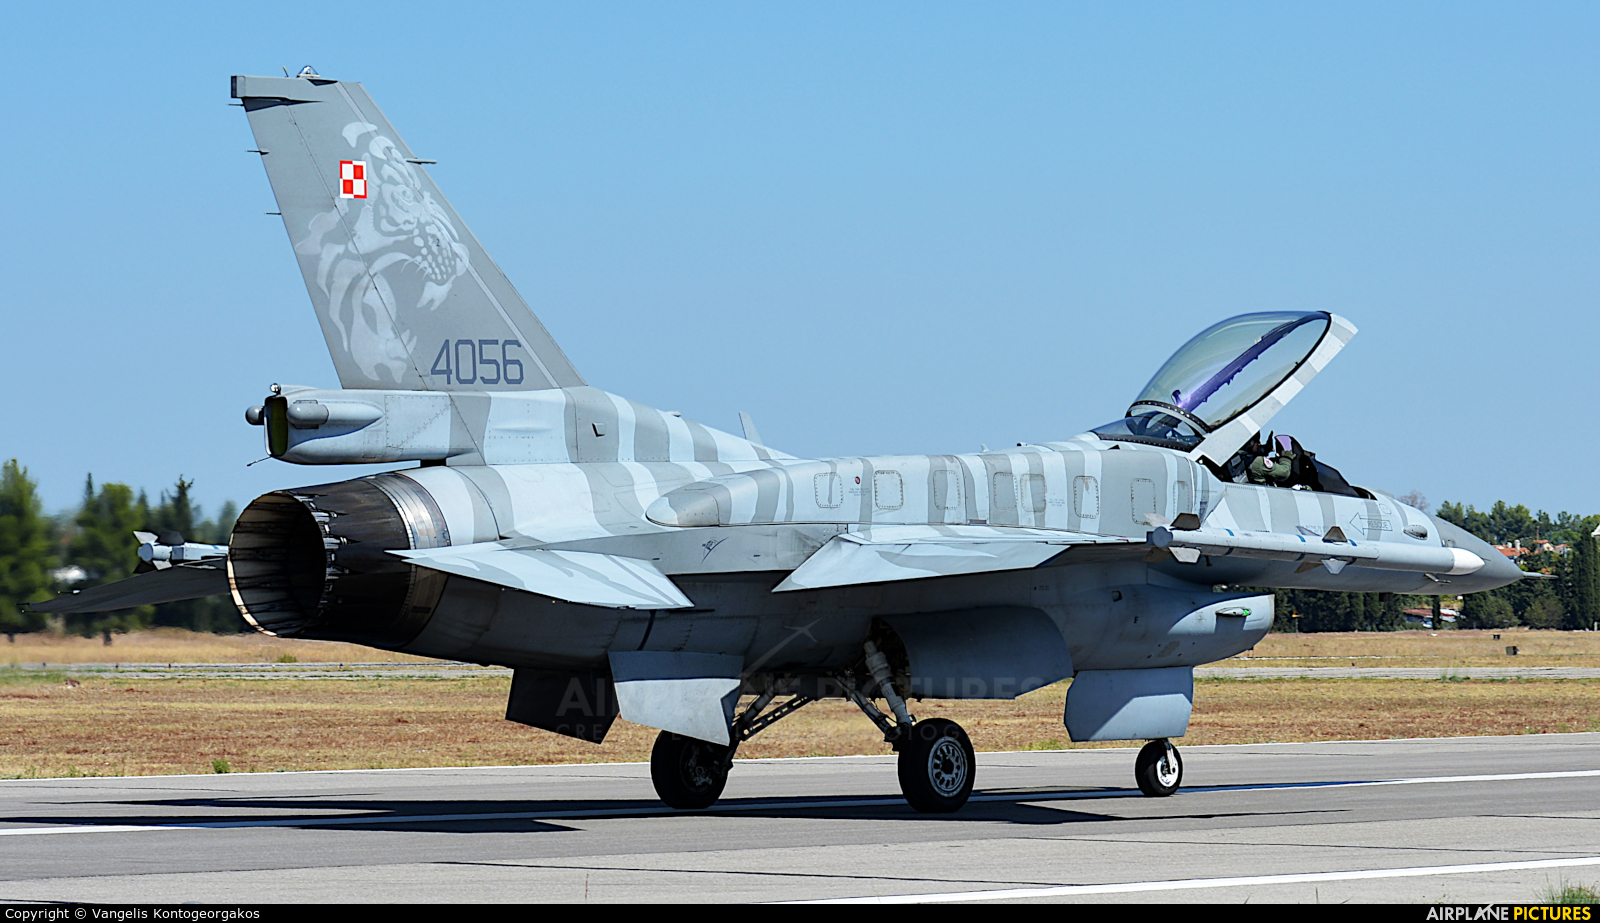 Poland - Air Force 4056 aircraft at Tanagra